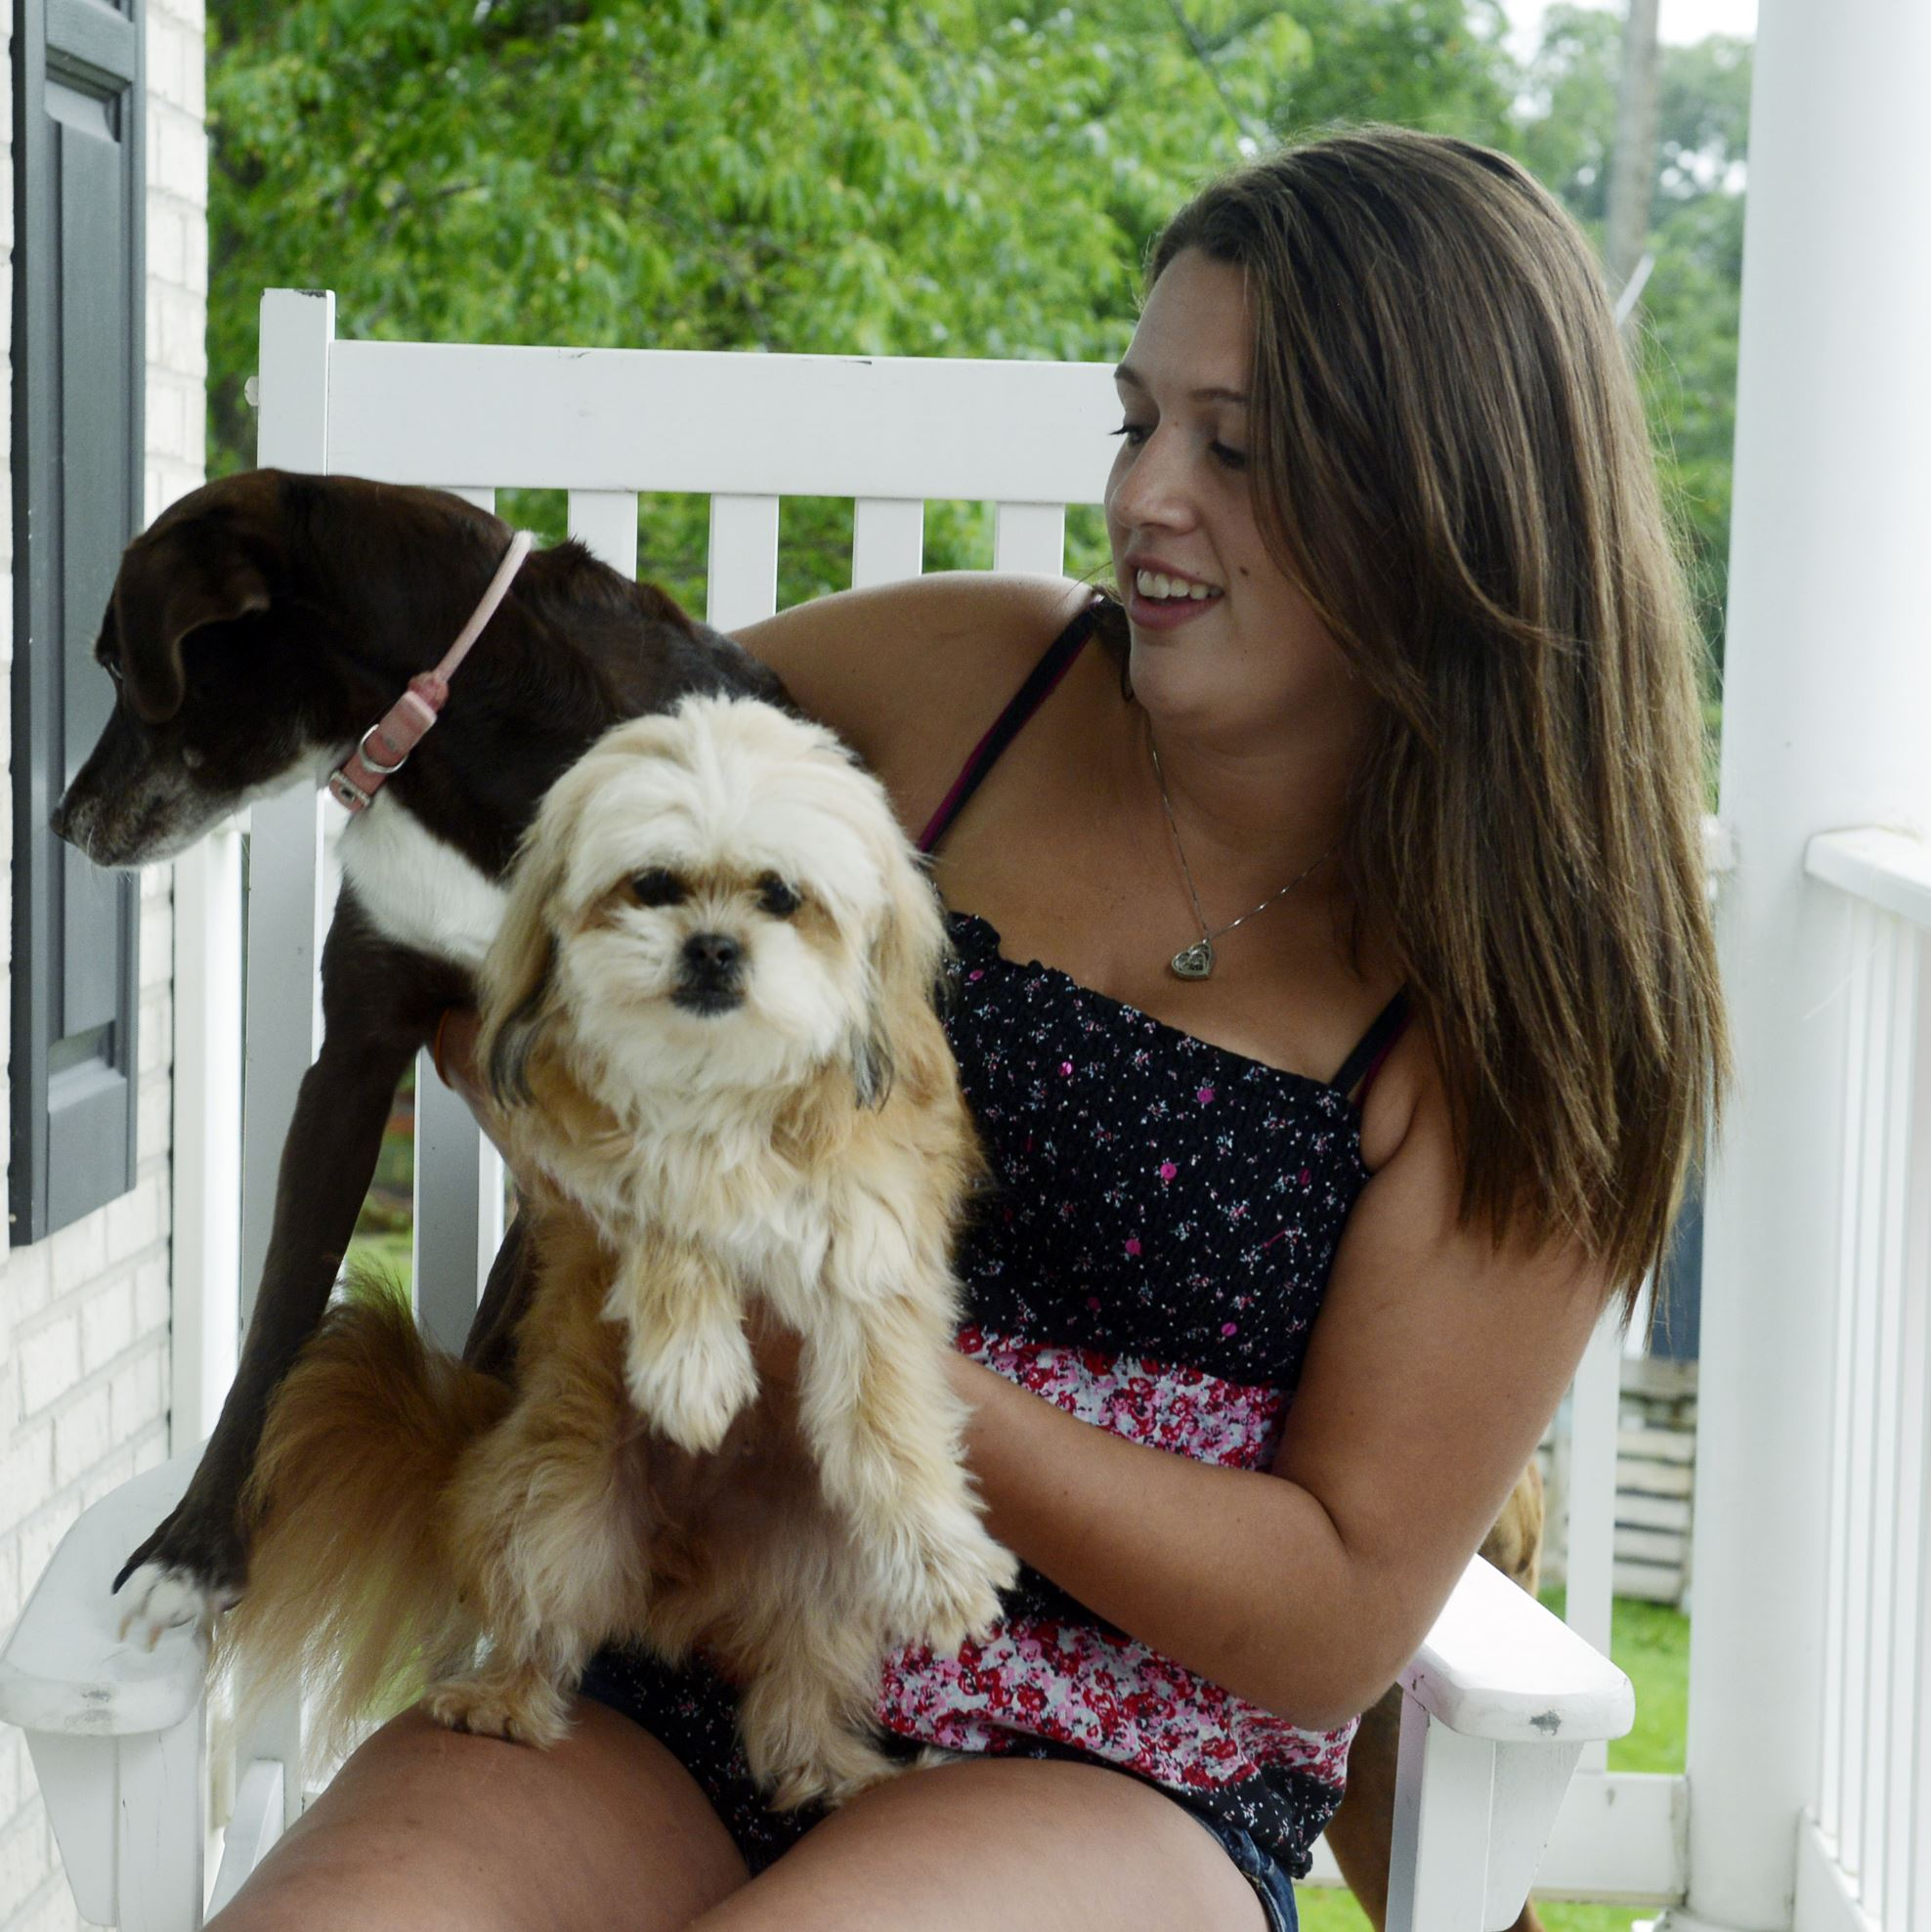 20150721bwCercielloMag03-2 Katelyn Cerciello, 18, of McDonald with a couple of her family's dogs, Gracie, left, and Deliah. Ms. Cerciello posted a story on Facebook and photos about Petland in Robinson, where she had worked and questioned the care the animals were getting.